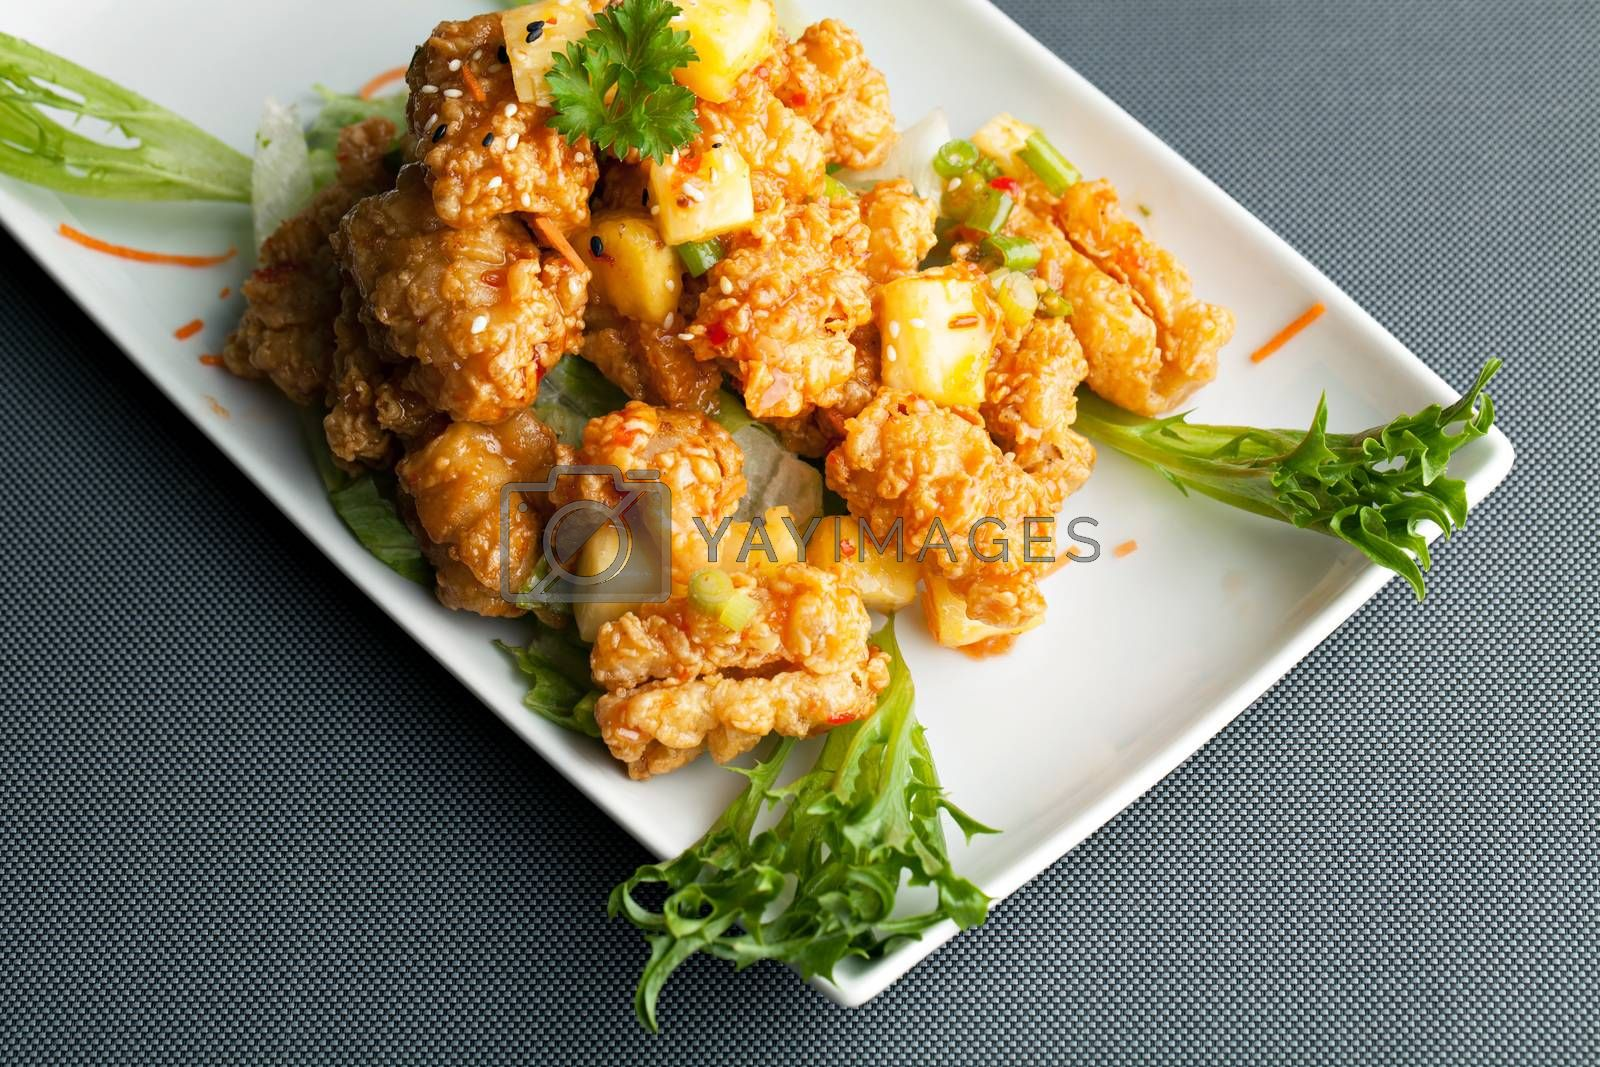 Thai Pineapple Fried Calamari by graficallyminded